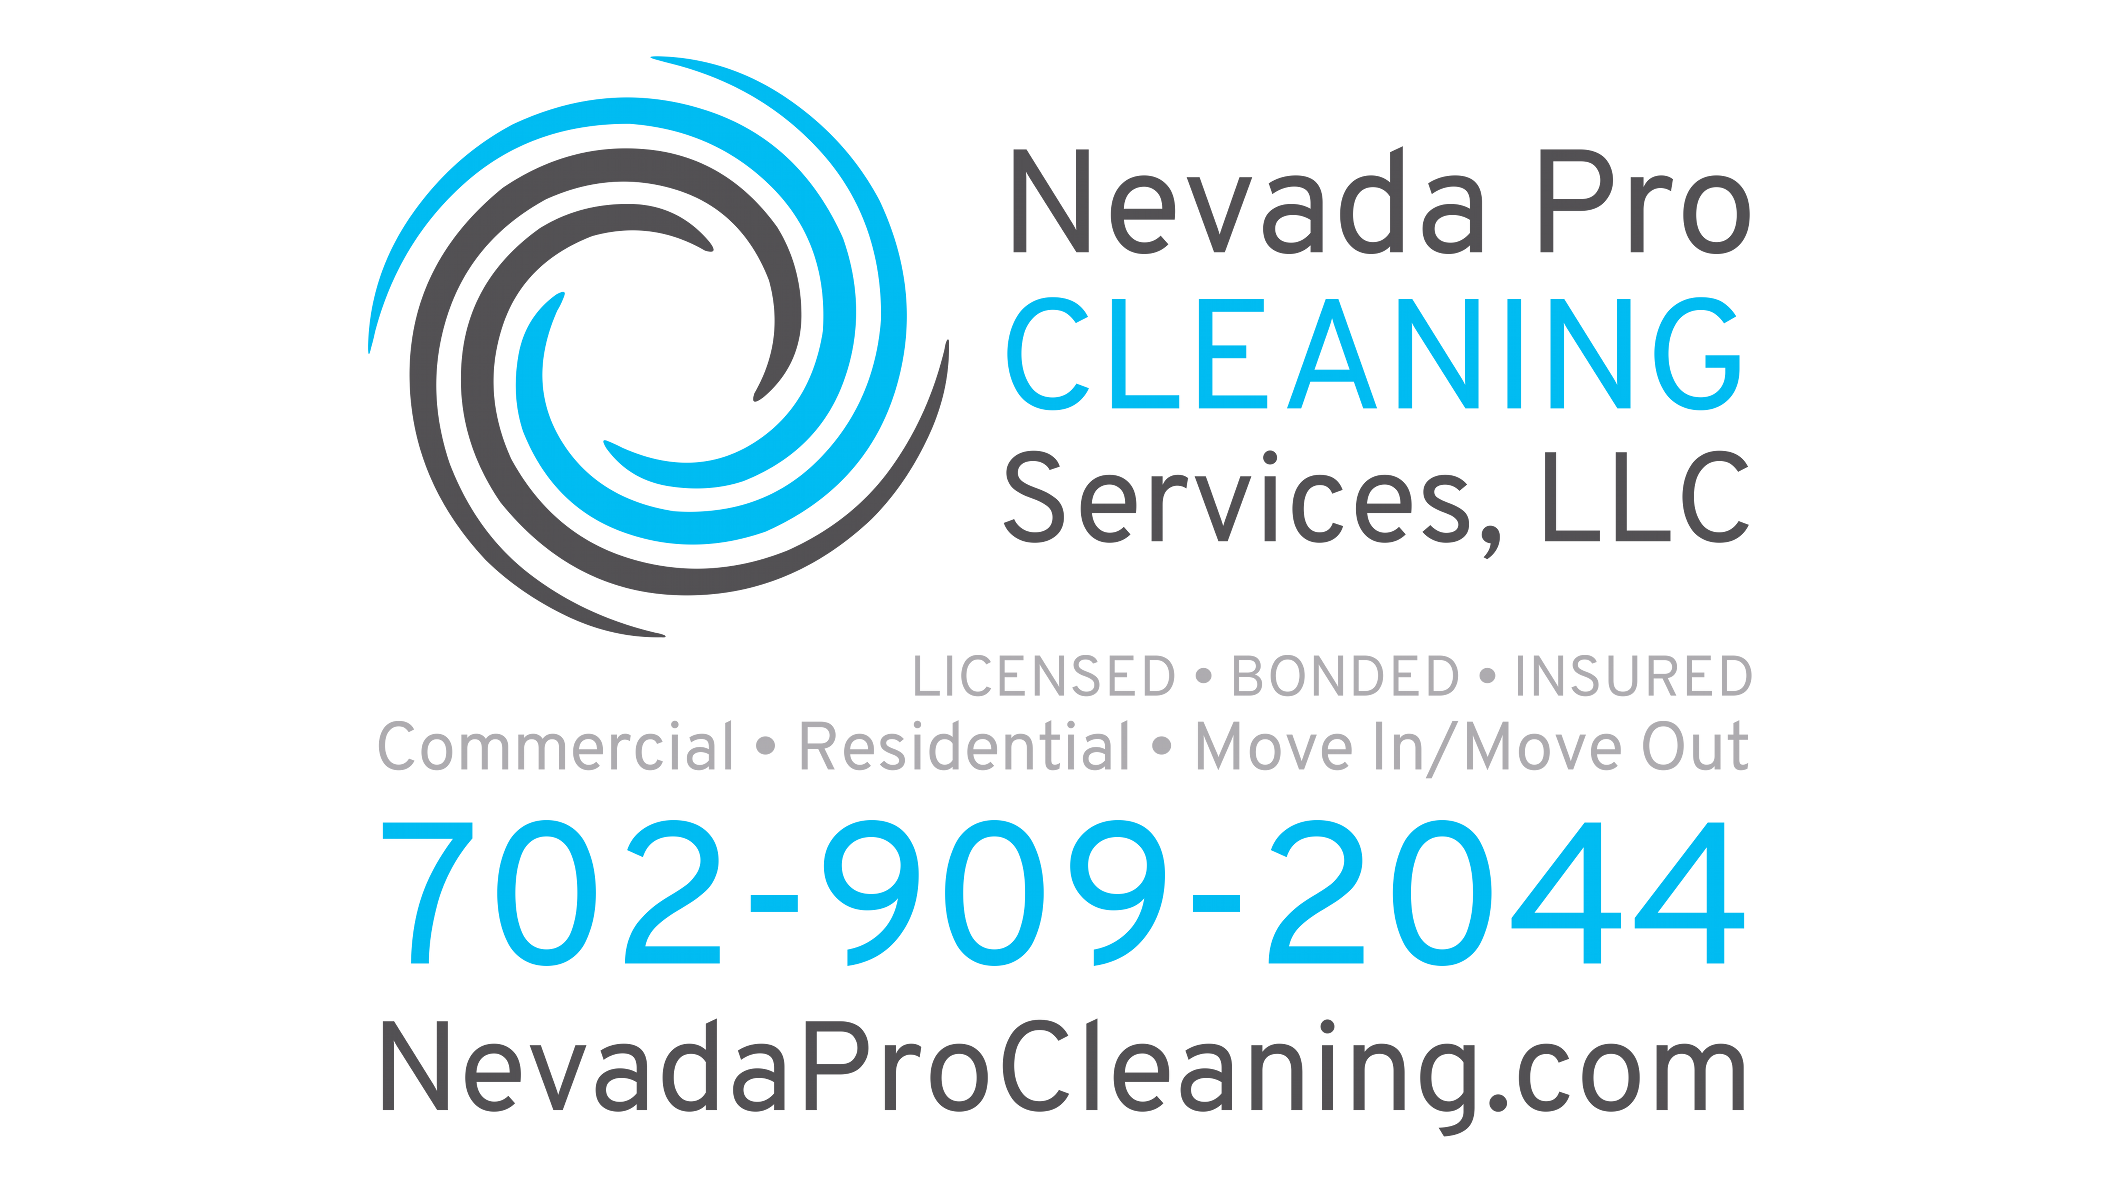 nevada-pro-cleaning-services